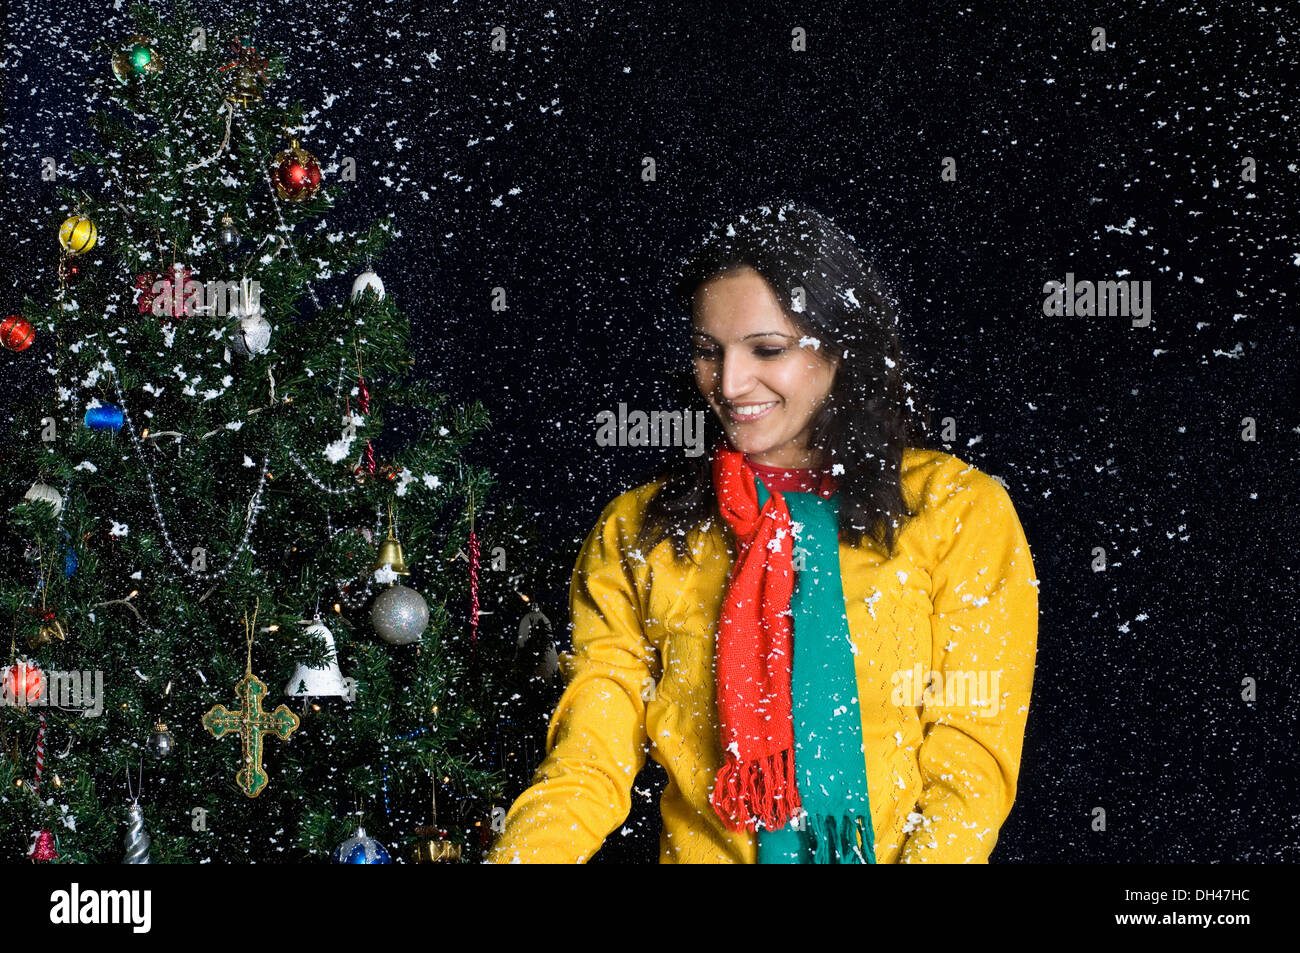 Woman standing in snow near a Christmas tree Stock Photo